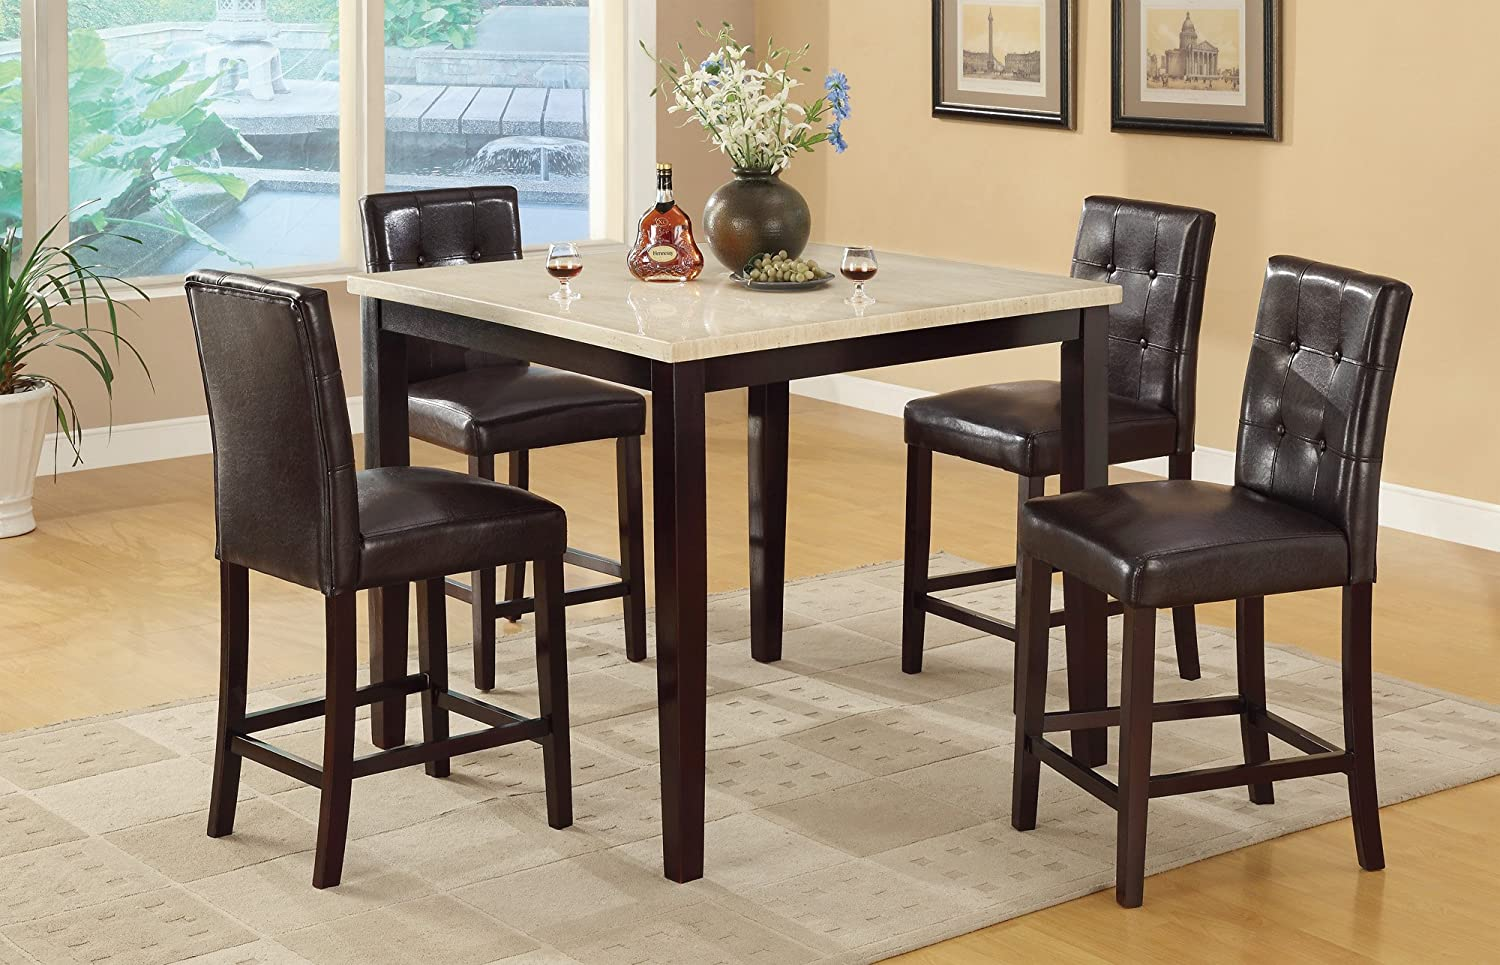 amazoncom counter height table with faux marble top and 4 high chairs table u0026 chair sets